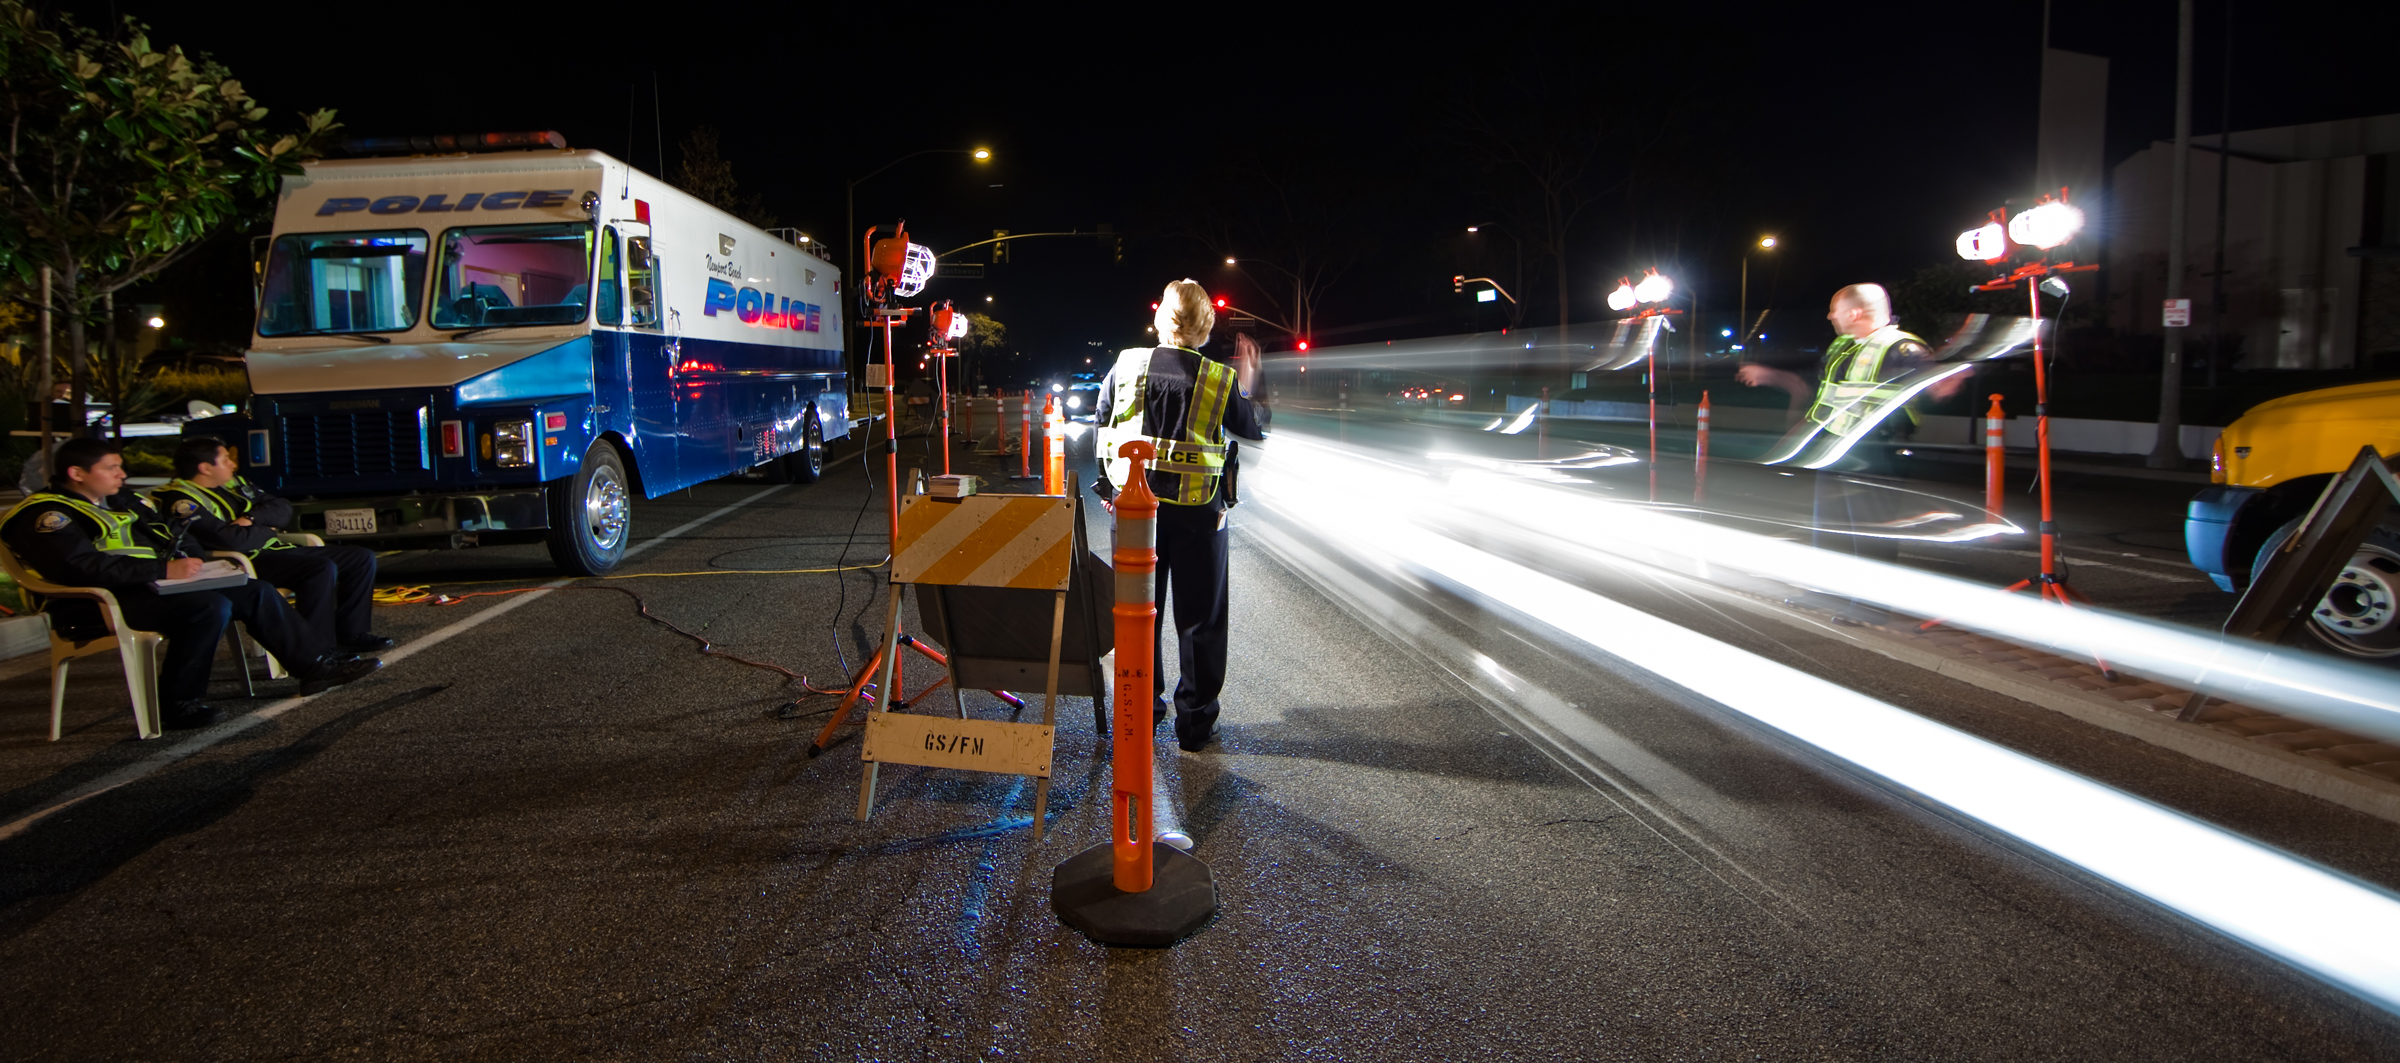 Newport Beach News DUI/Drivers License Checkpoint Planned